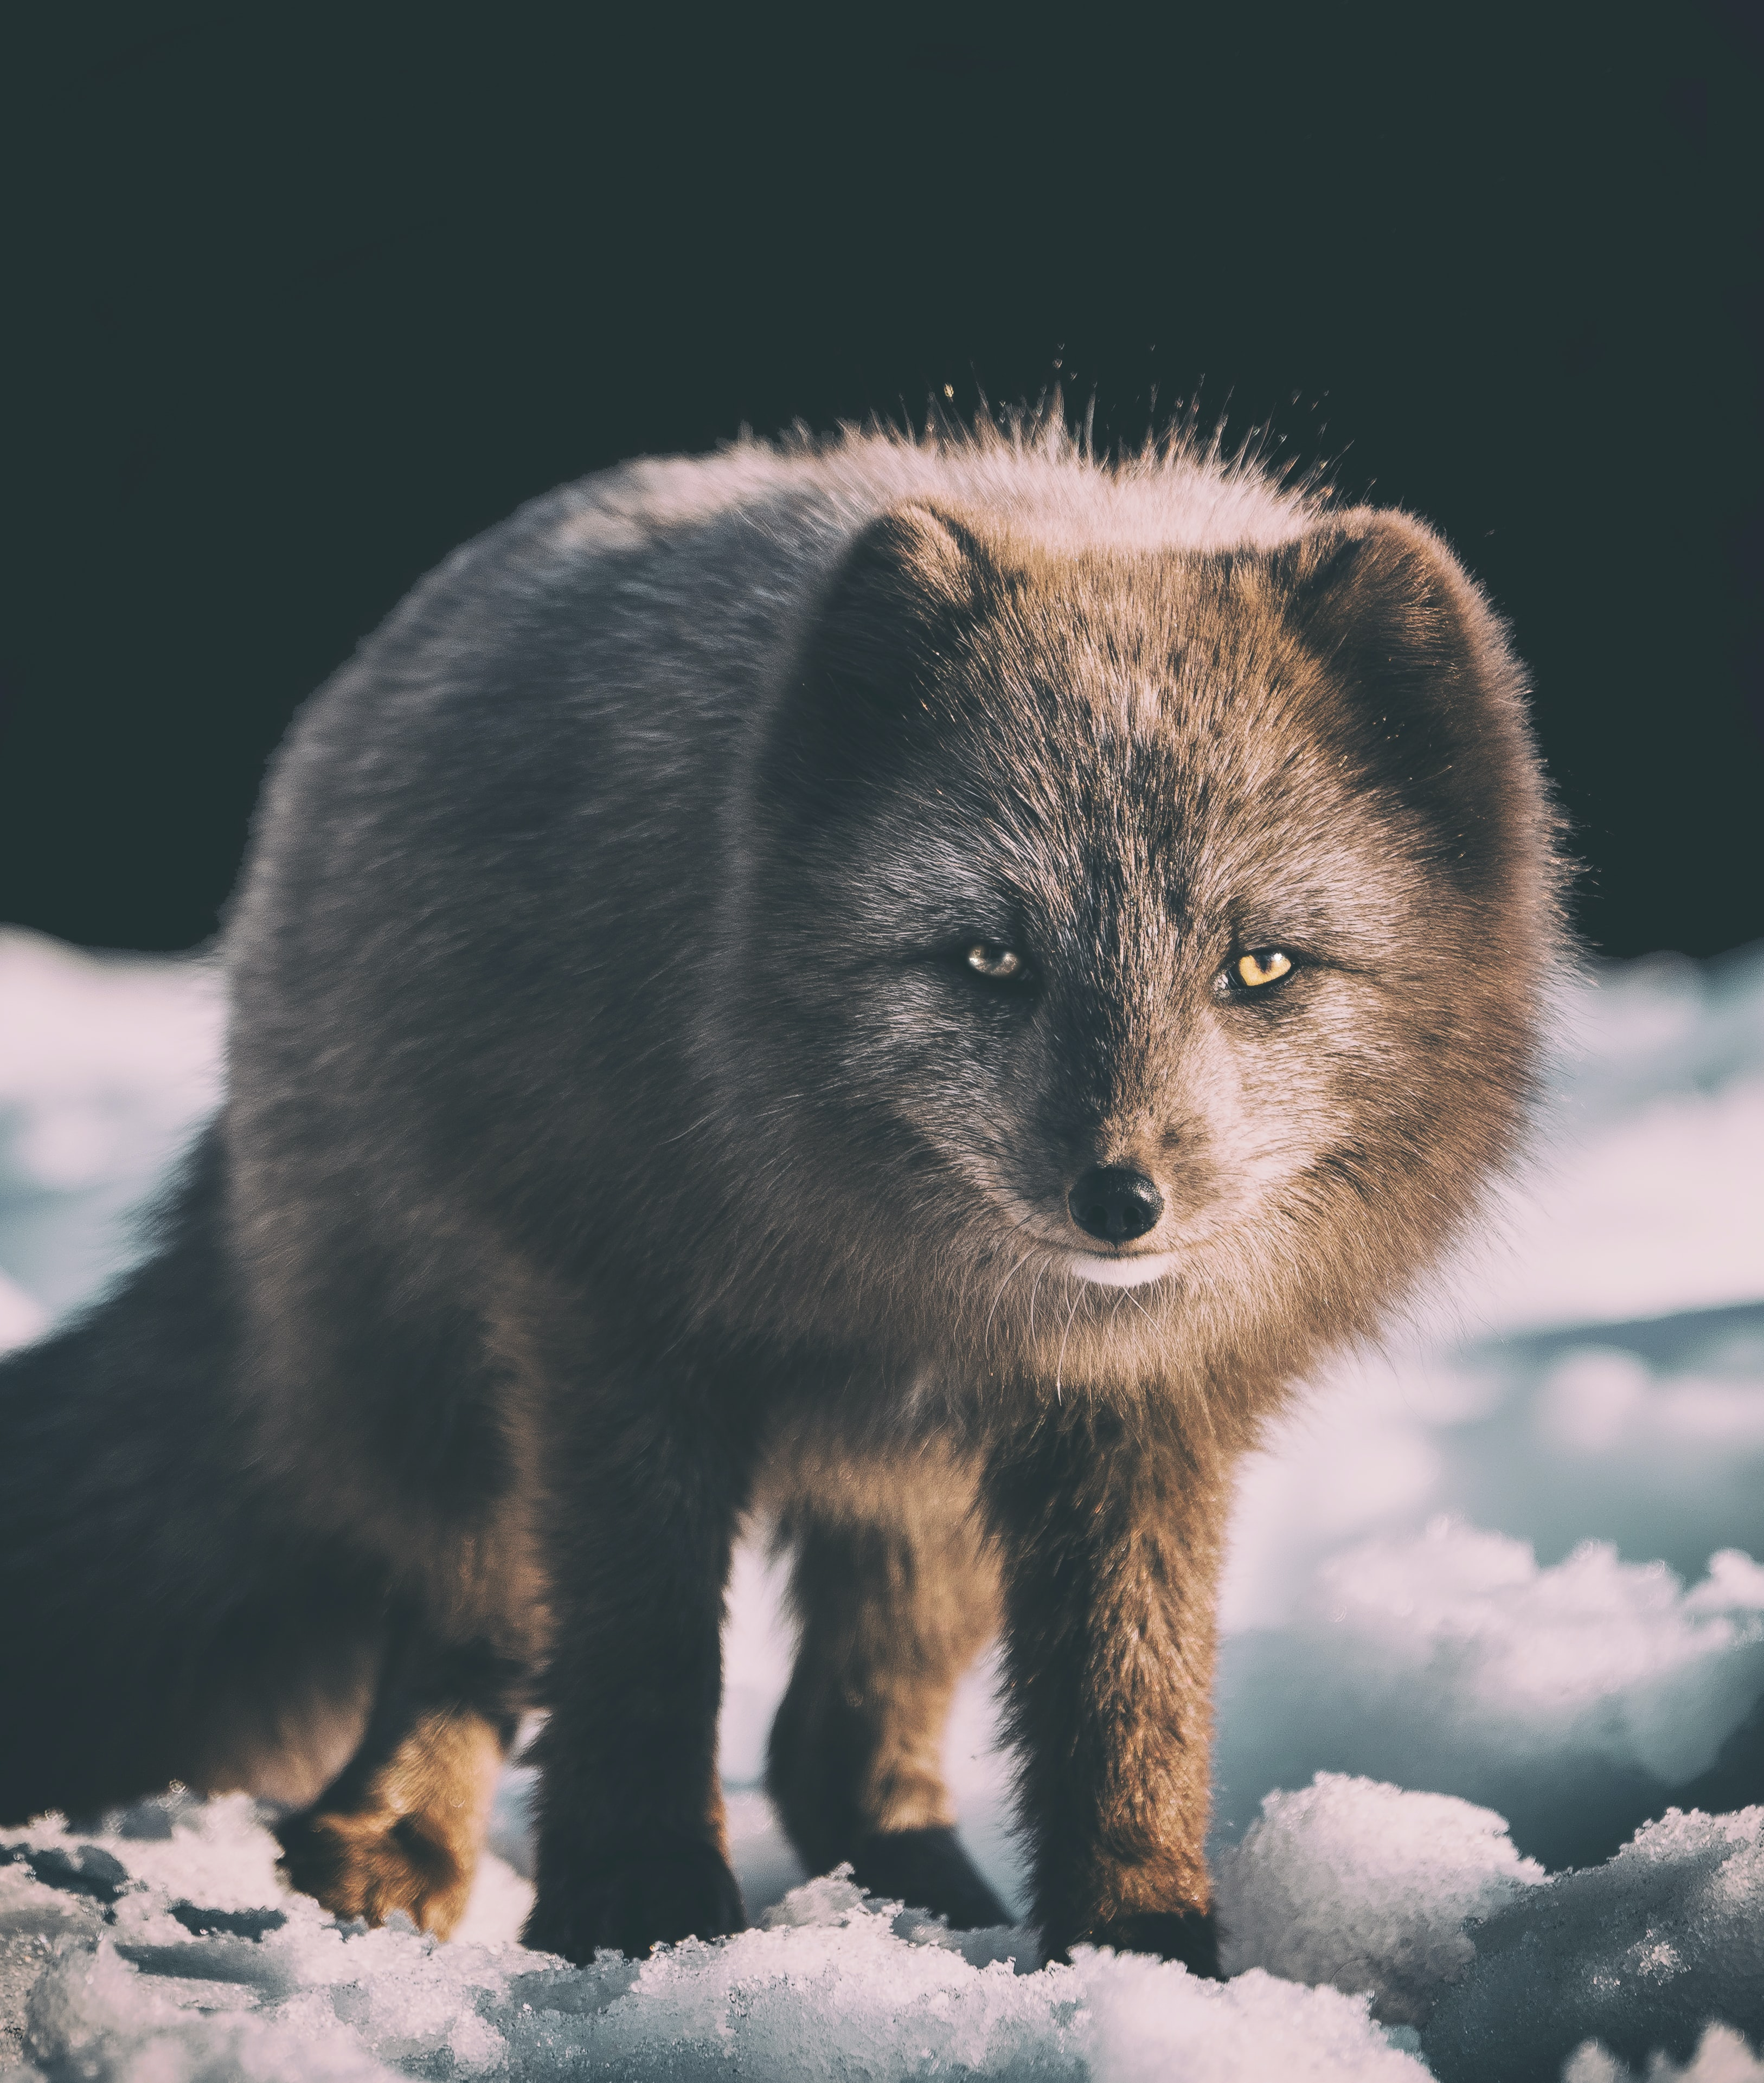 focus photography of gray fox on snow